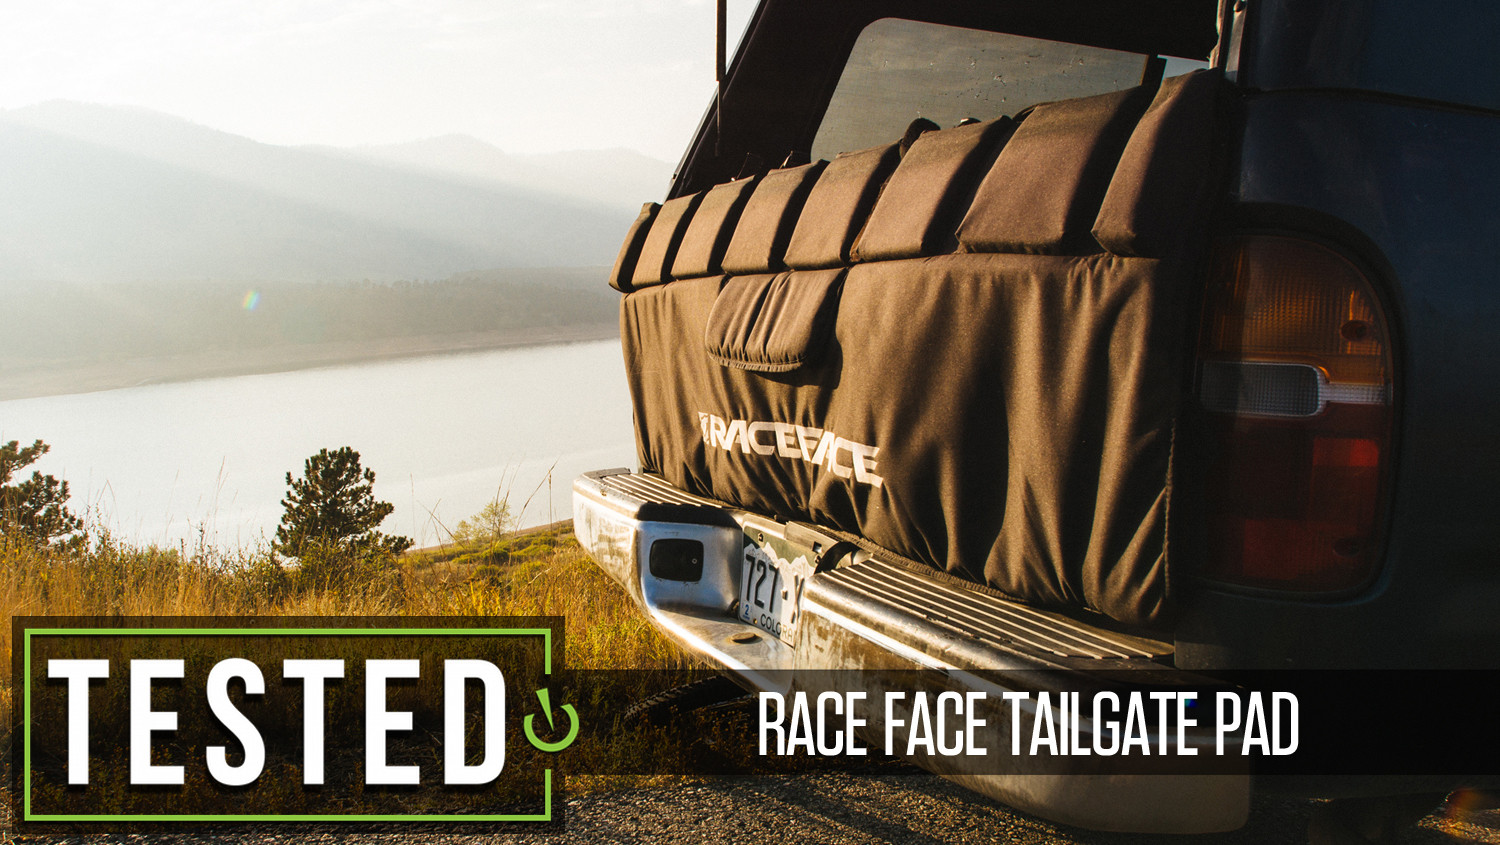 Tested Race Face Tailgate Pad